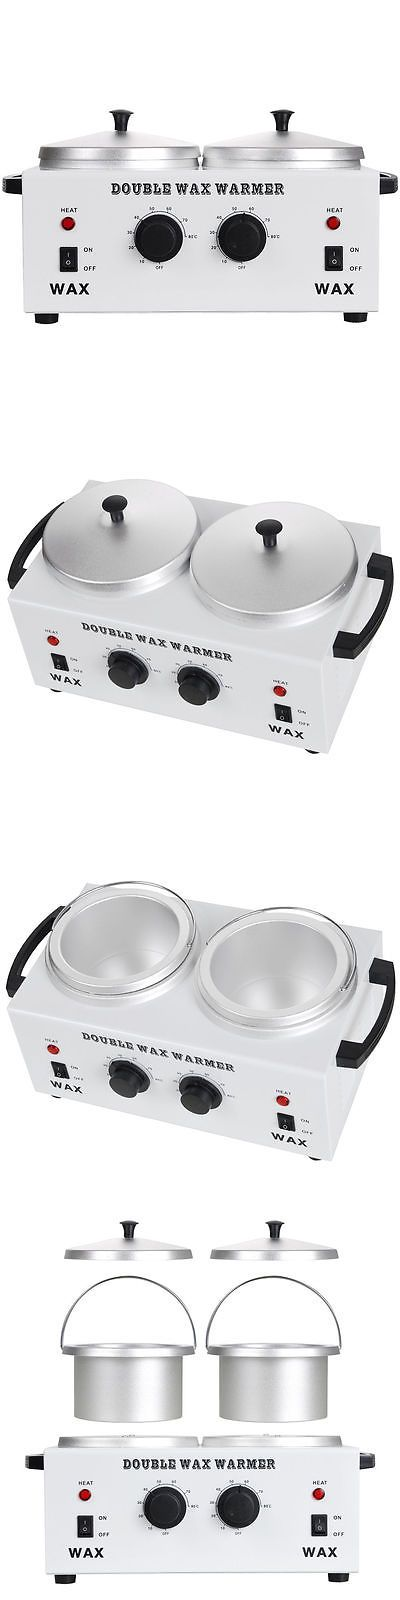 Waxing Supplies: Double Pot Electric Wax Warmer Heater Facial Skin Spa Hair Removal Grooming -> BUY IT NOW ONLY: $44.28 on eBay!